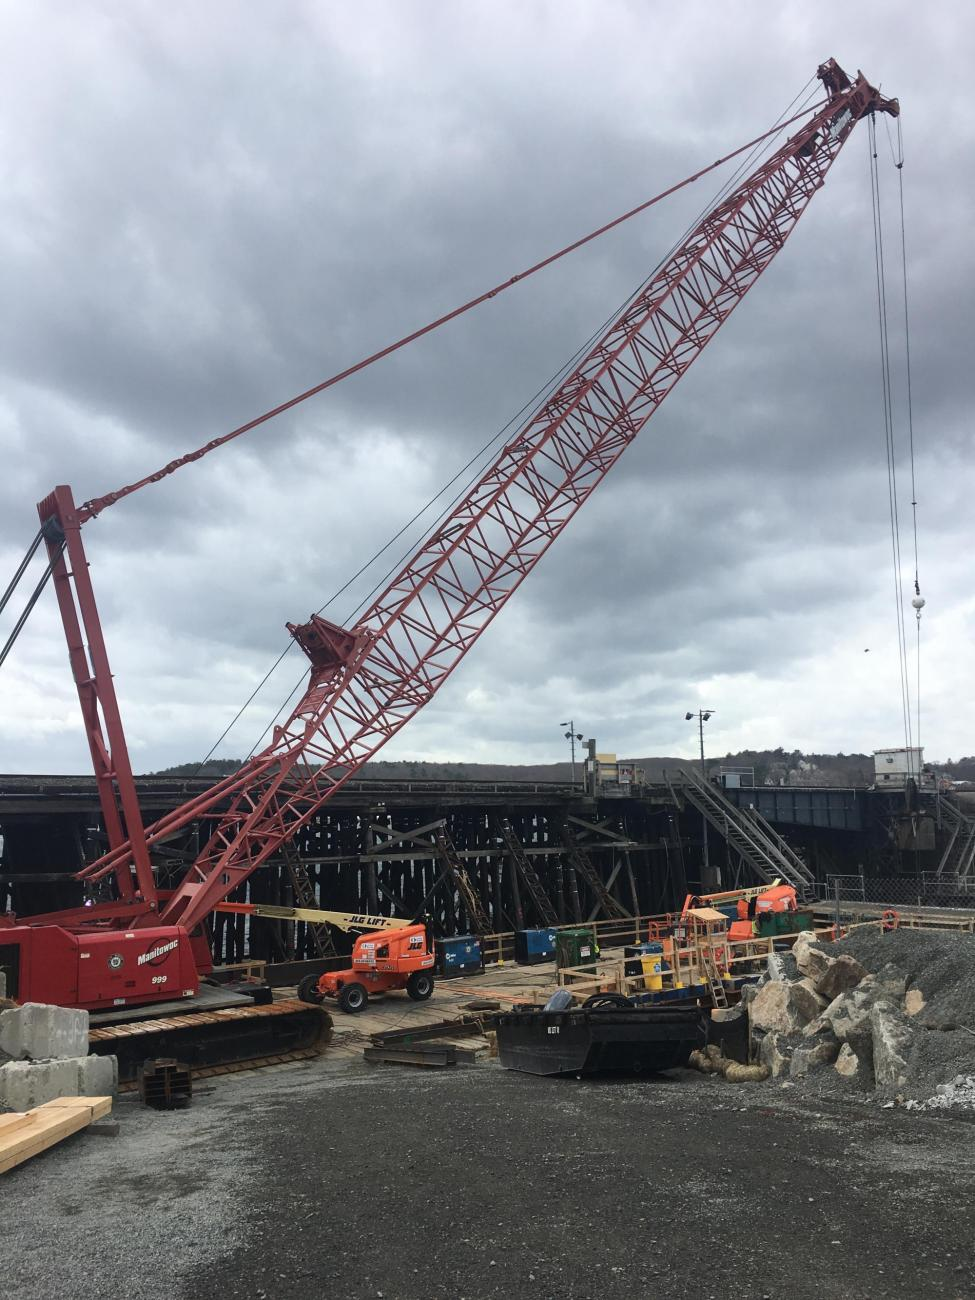 Ground level view of a large red crane at the Gloucester Drawbridge construction site.